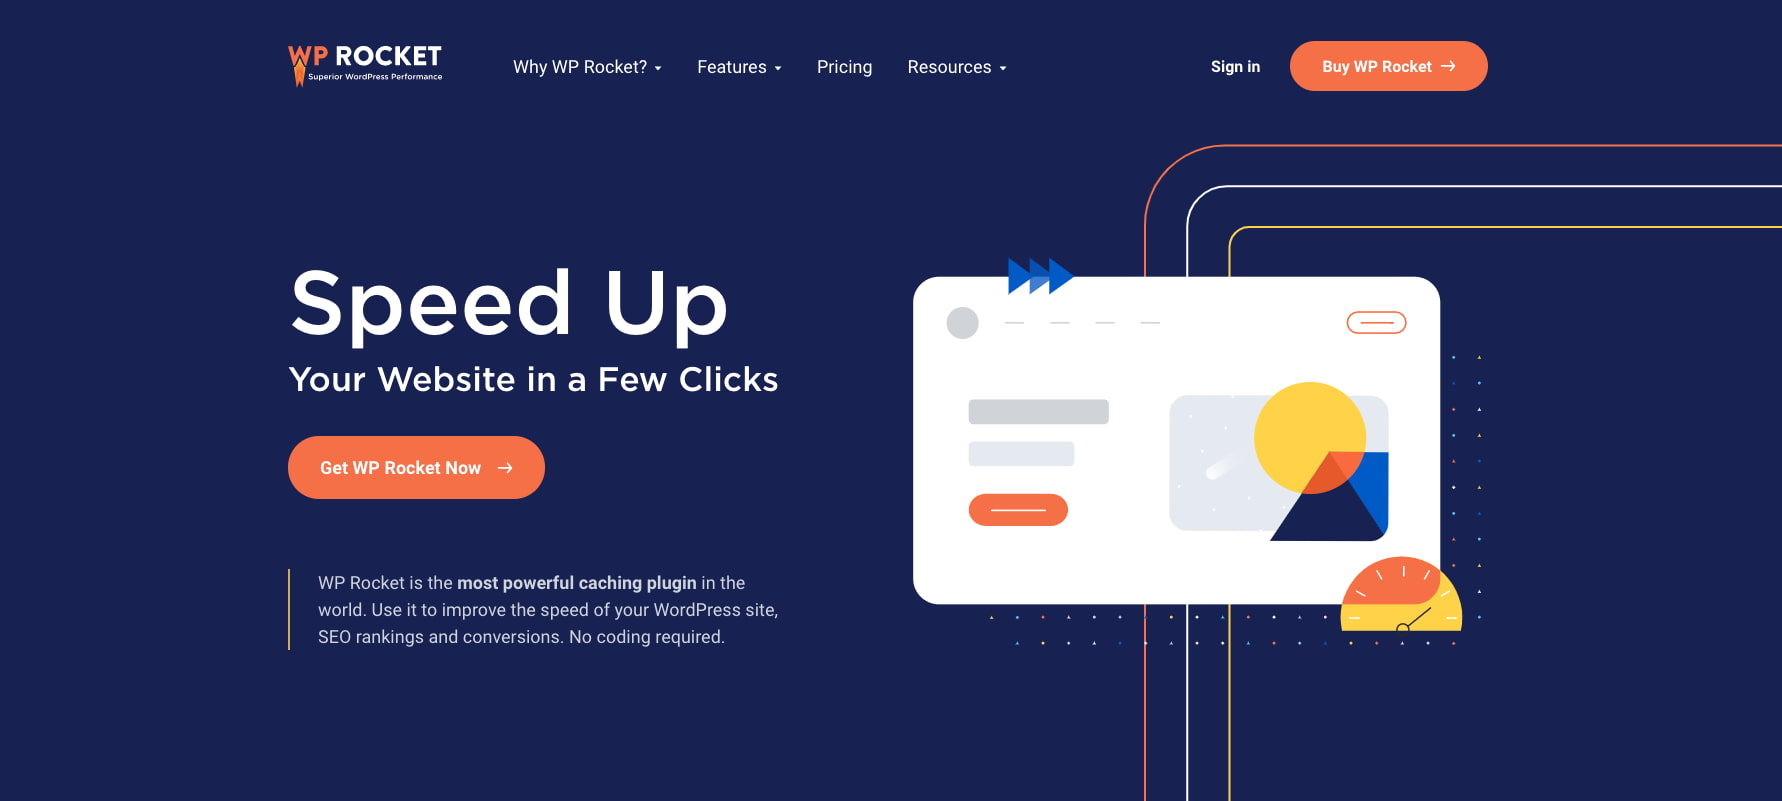 product page for the WordPress plugin wp rocket